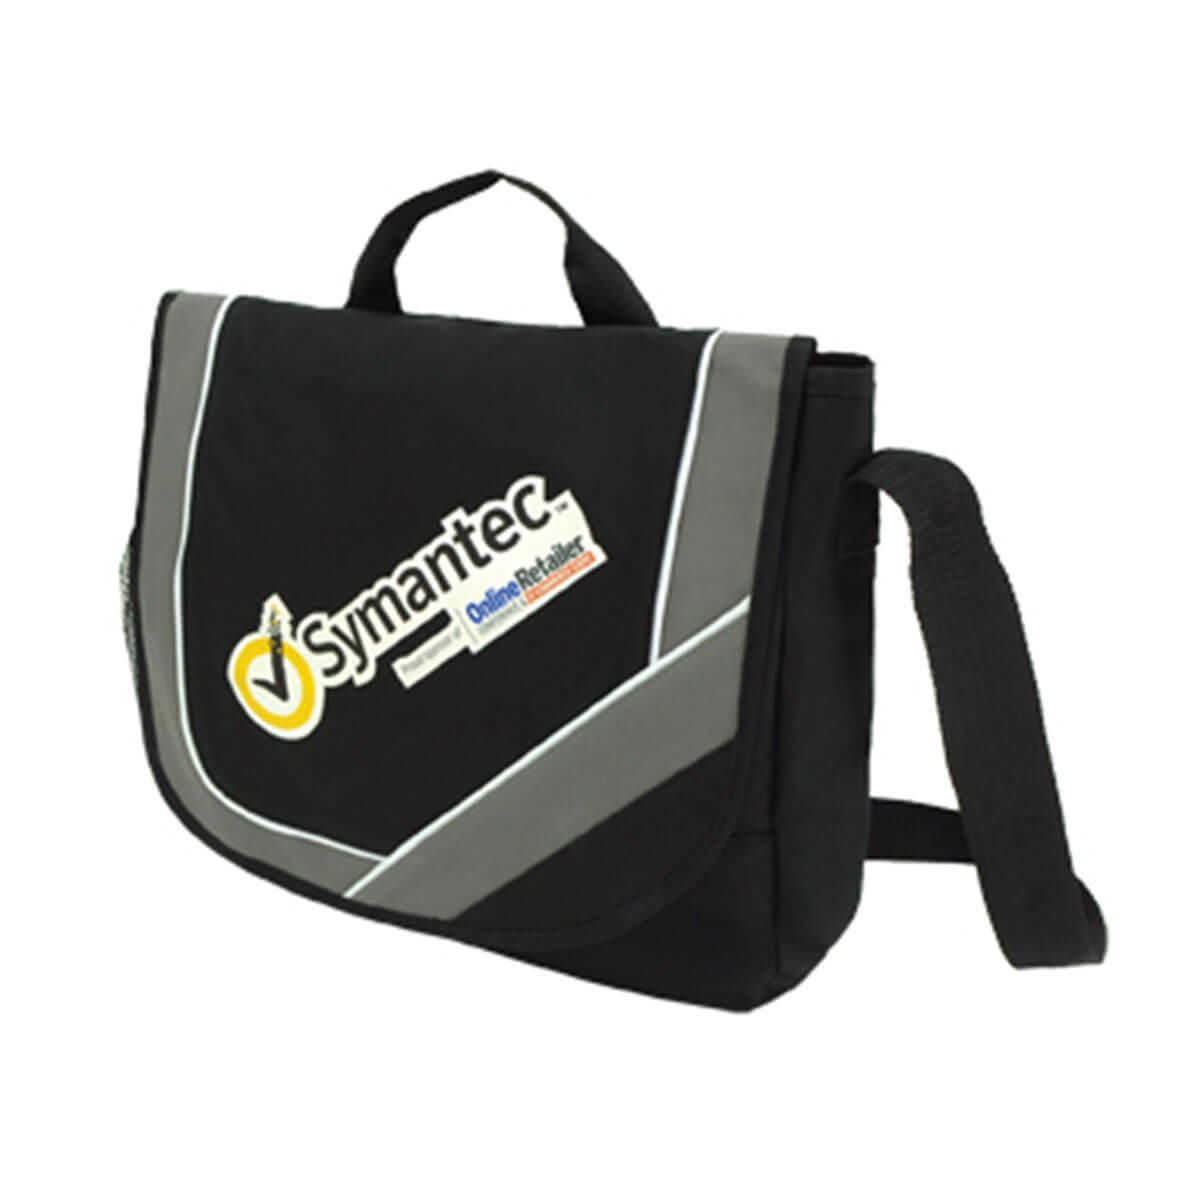 Calibre Conference Bag-Black / White / Dark Grey